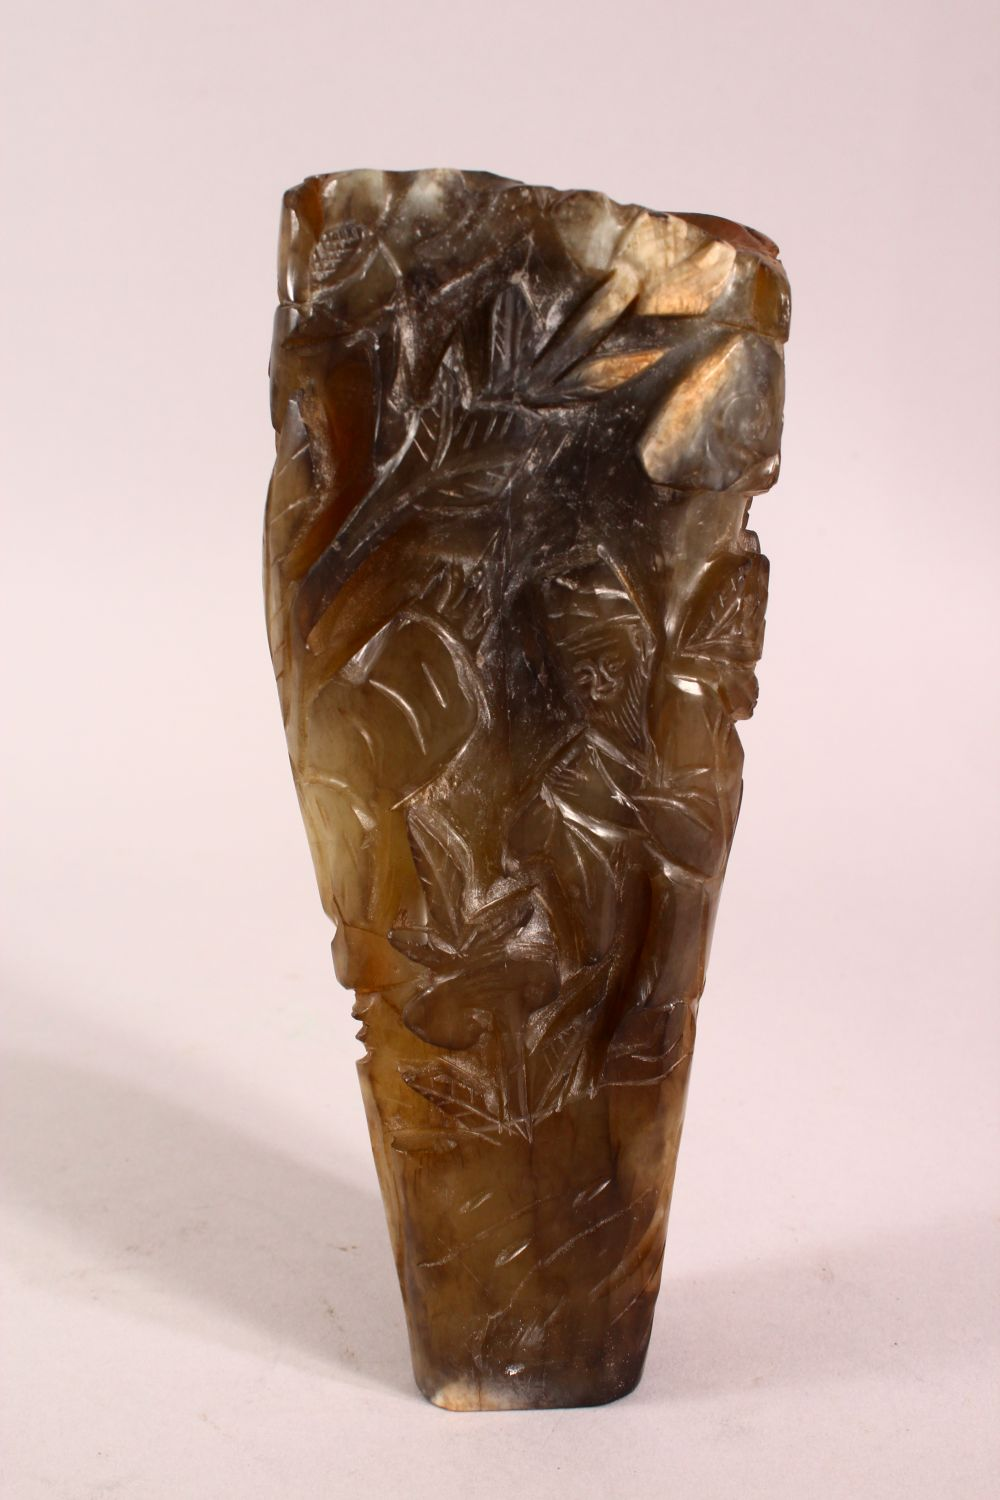 A CHINESE CARVED JADE VASE, carved with figures and foliage, 20.5cm - Image 2 of 8